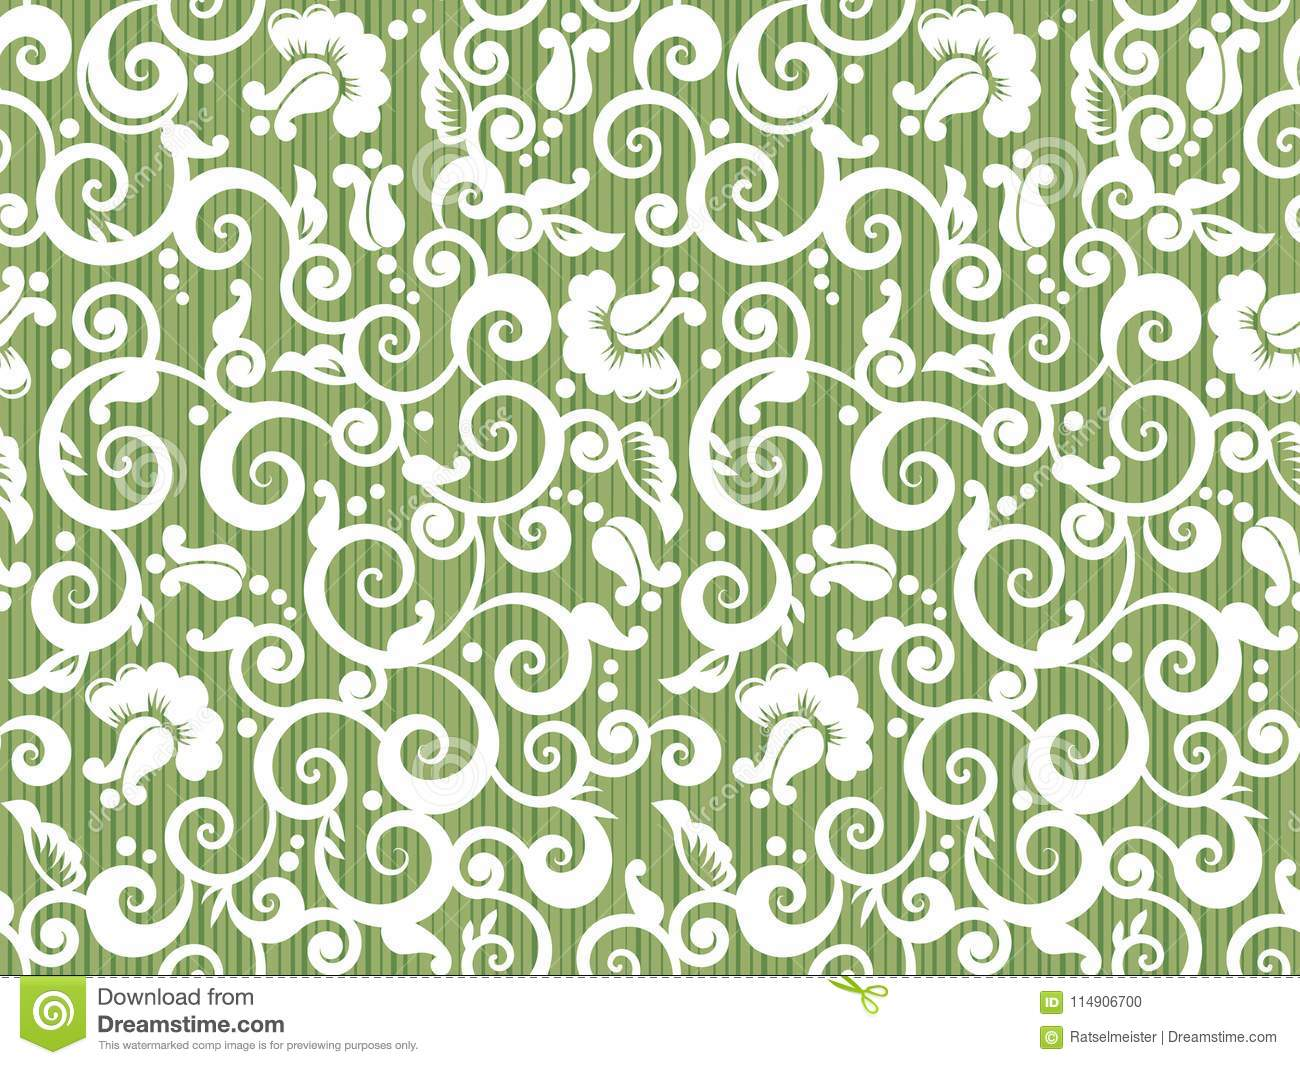 Seamless vintage white and green floral pattern with abstract roses